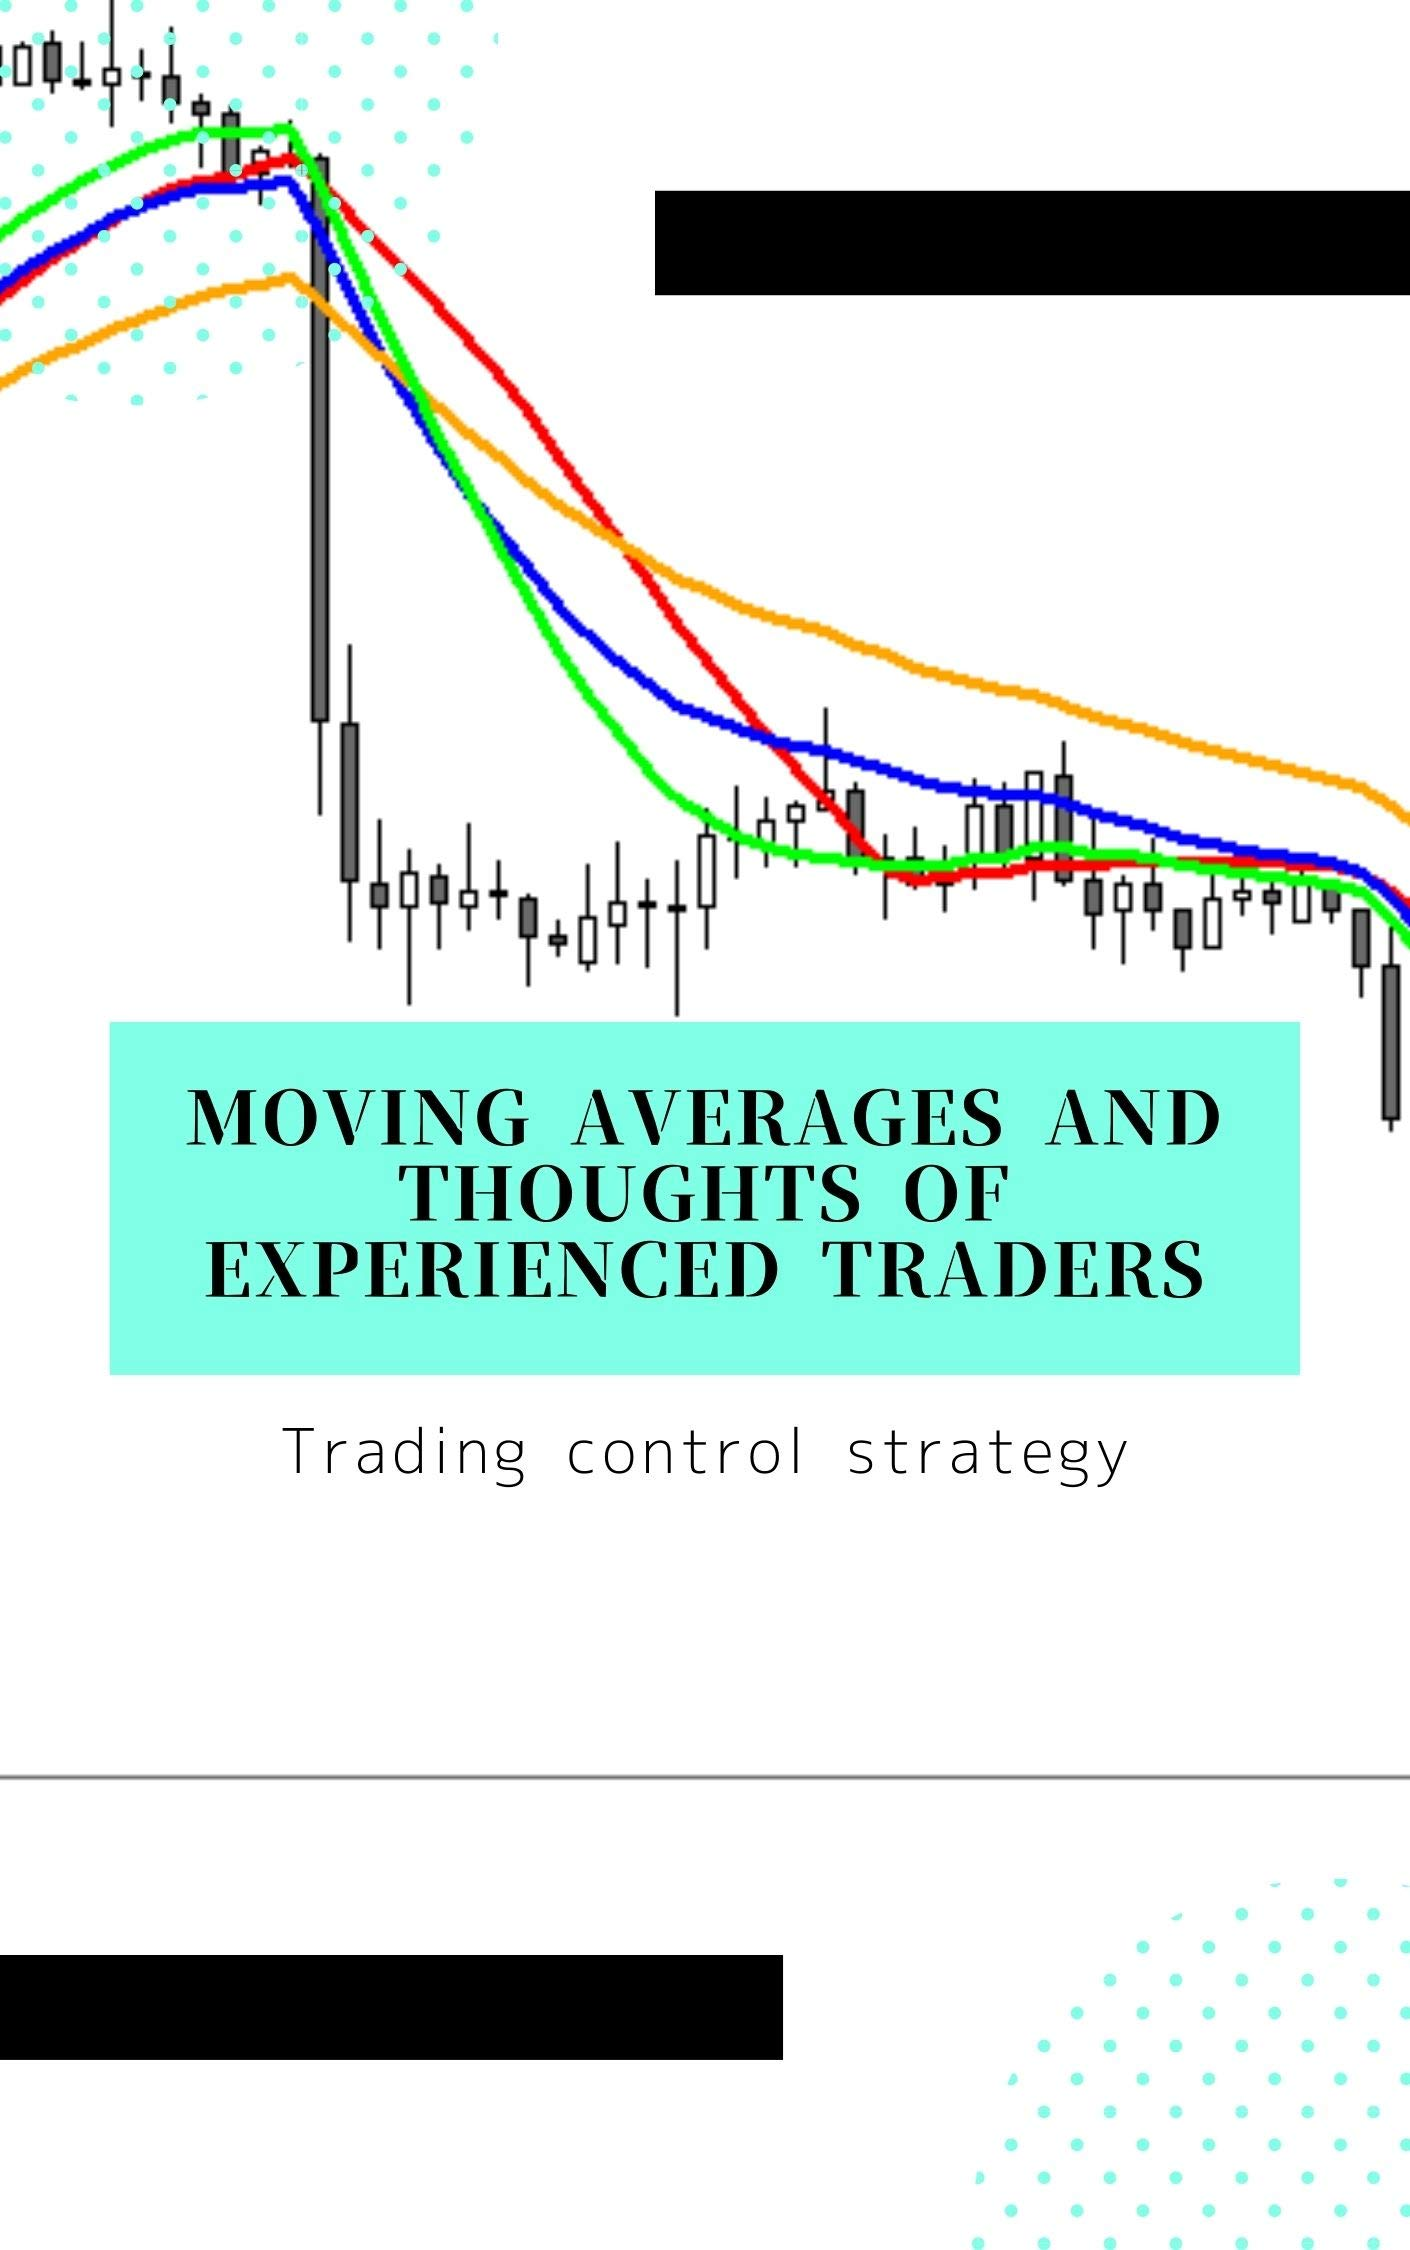 Dominate the trade with the moving average and the thought of a seasoned trader